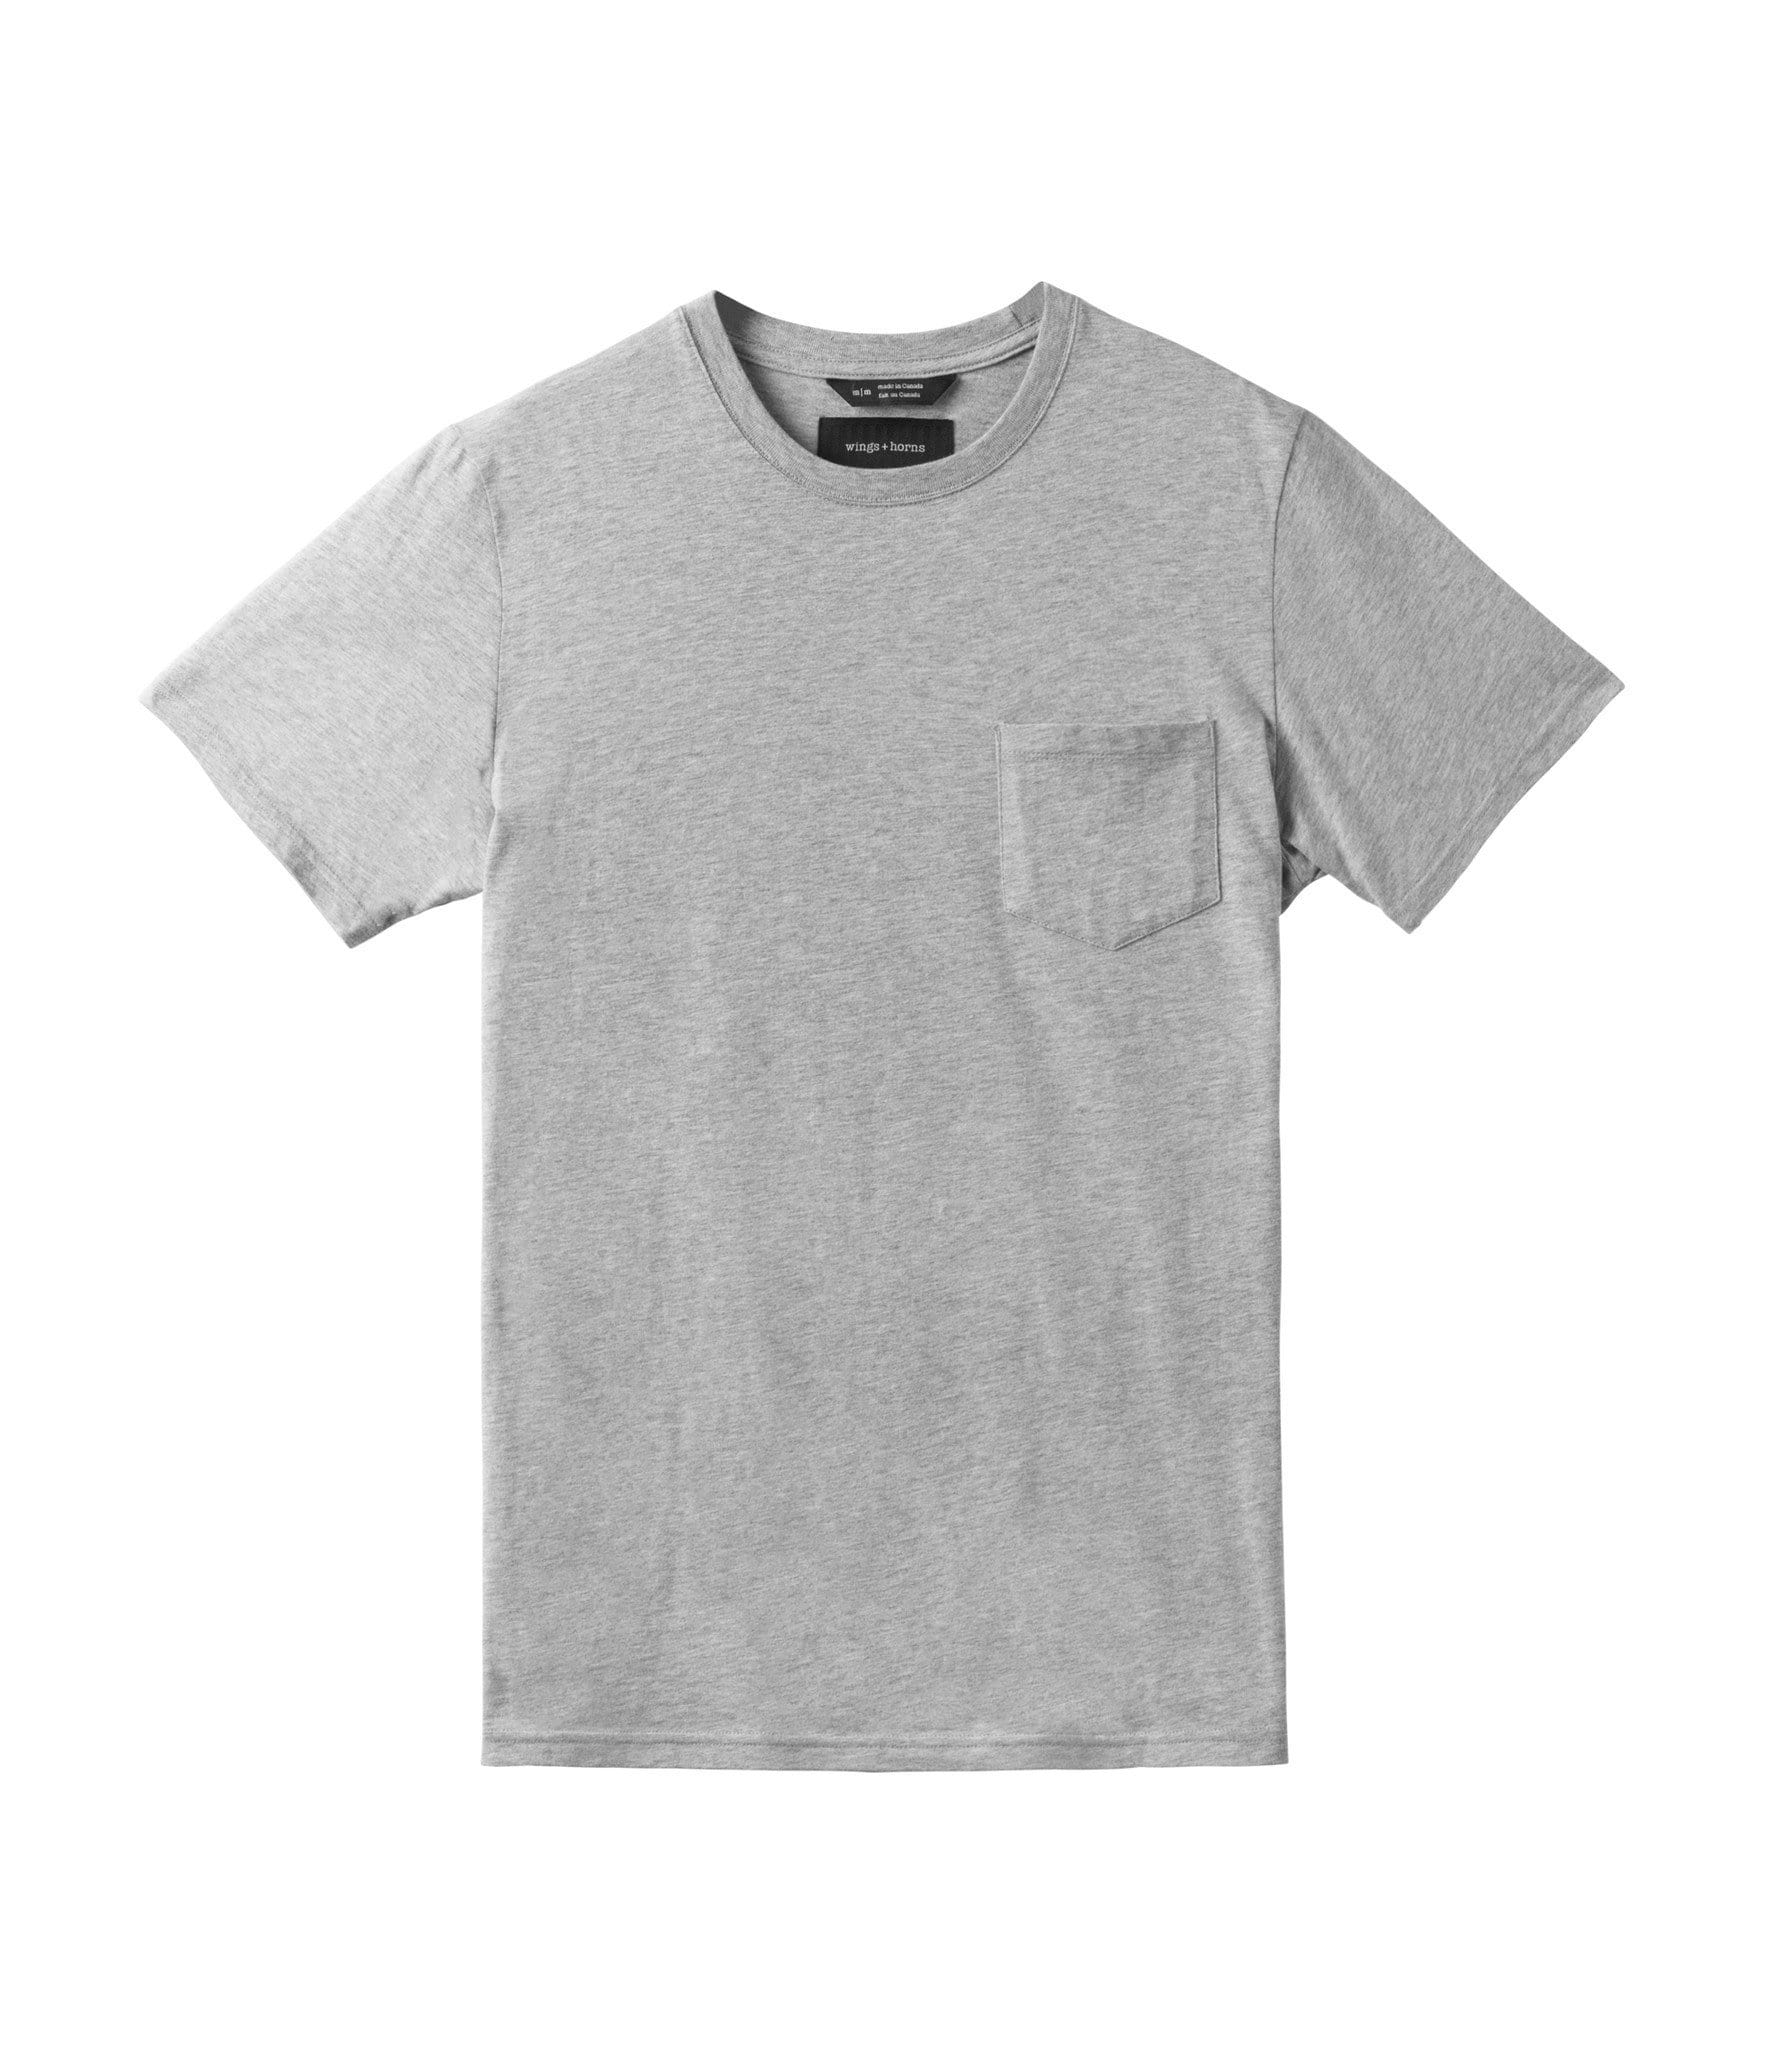 ORIGINAL POCKET T-SHIRT MENS SOFTGOODS WINGS+HORNS GREY XL WI-1079